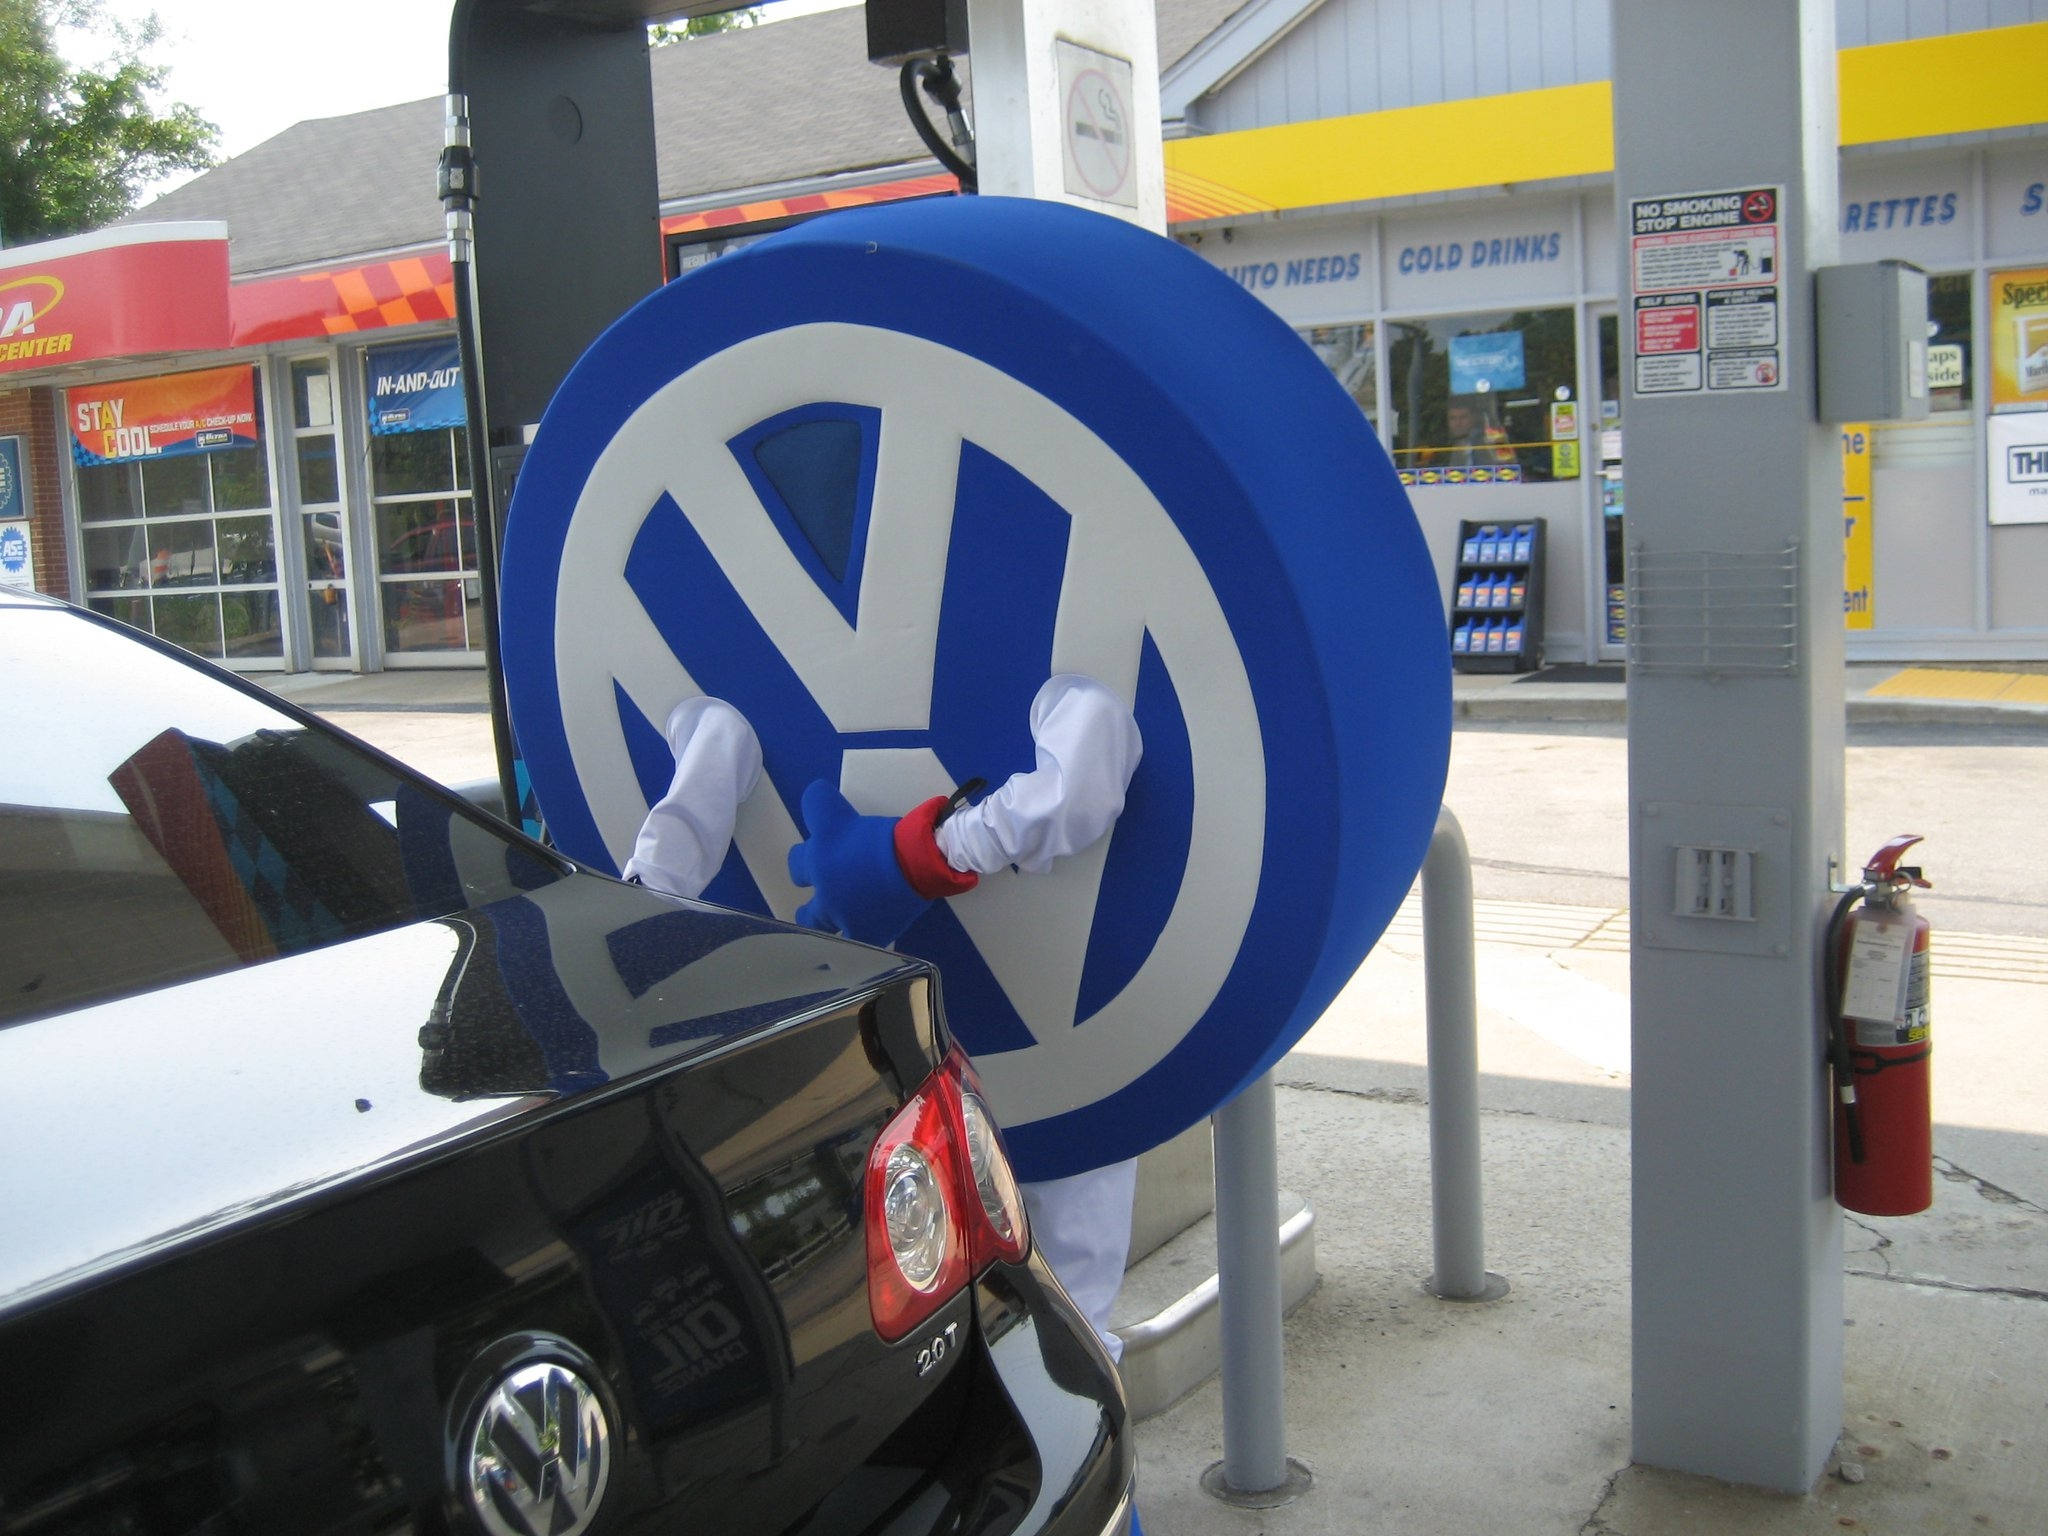 No heat wave for Coastal VW man…VW mascot welcomes customers to new Volkswagen dealership on Rt. 53 in Hanover.